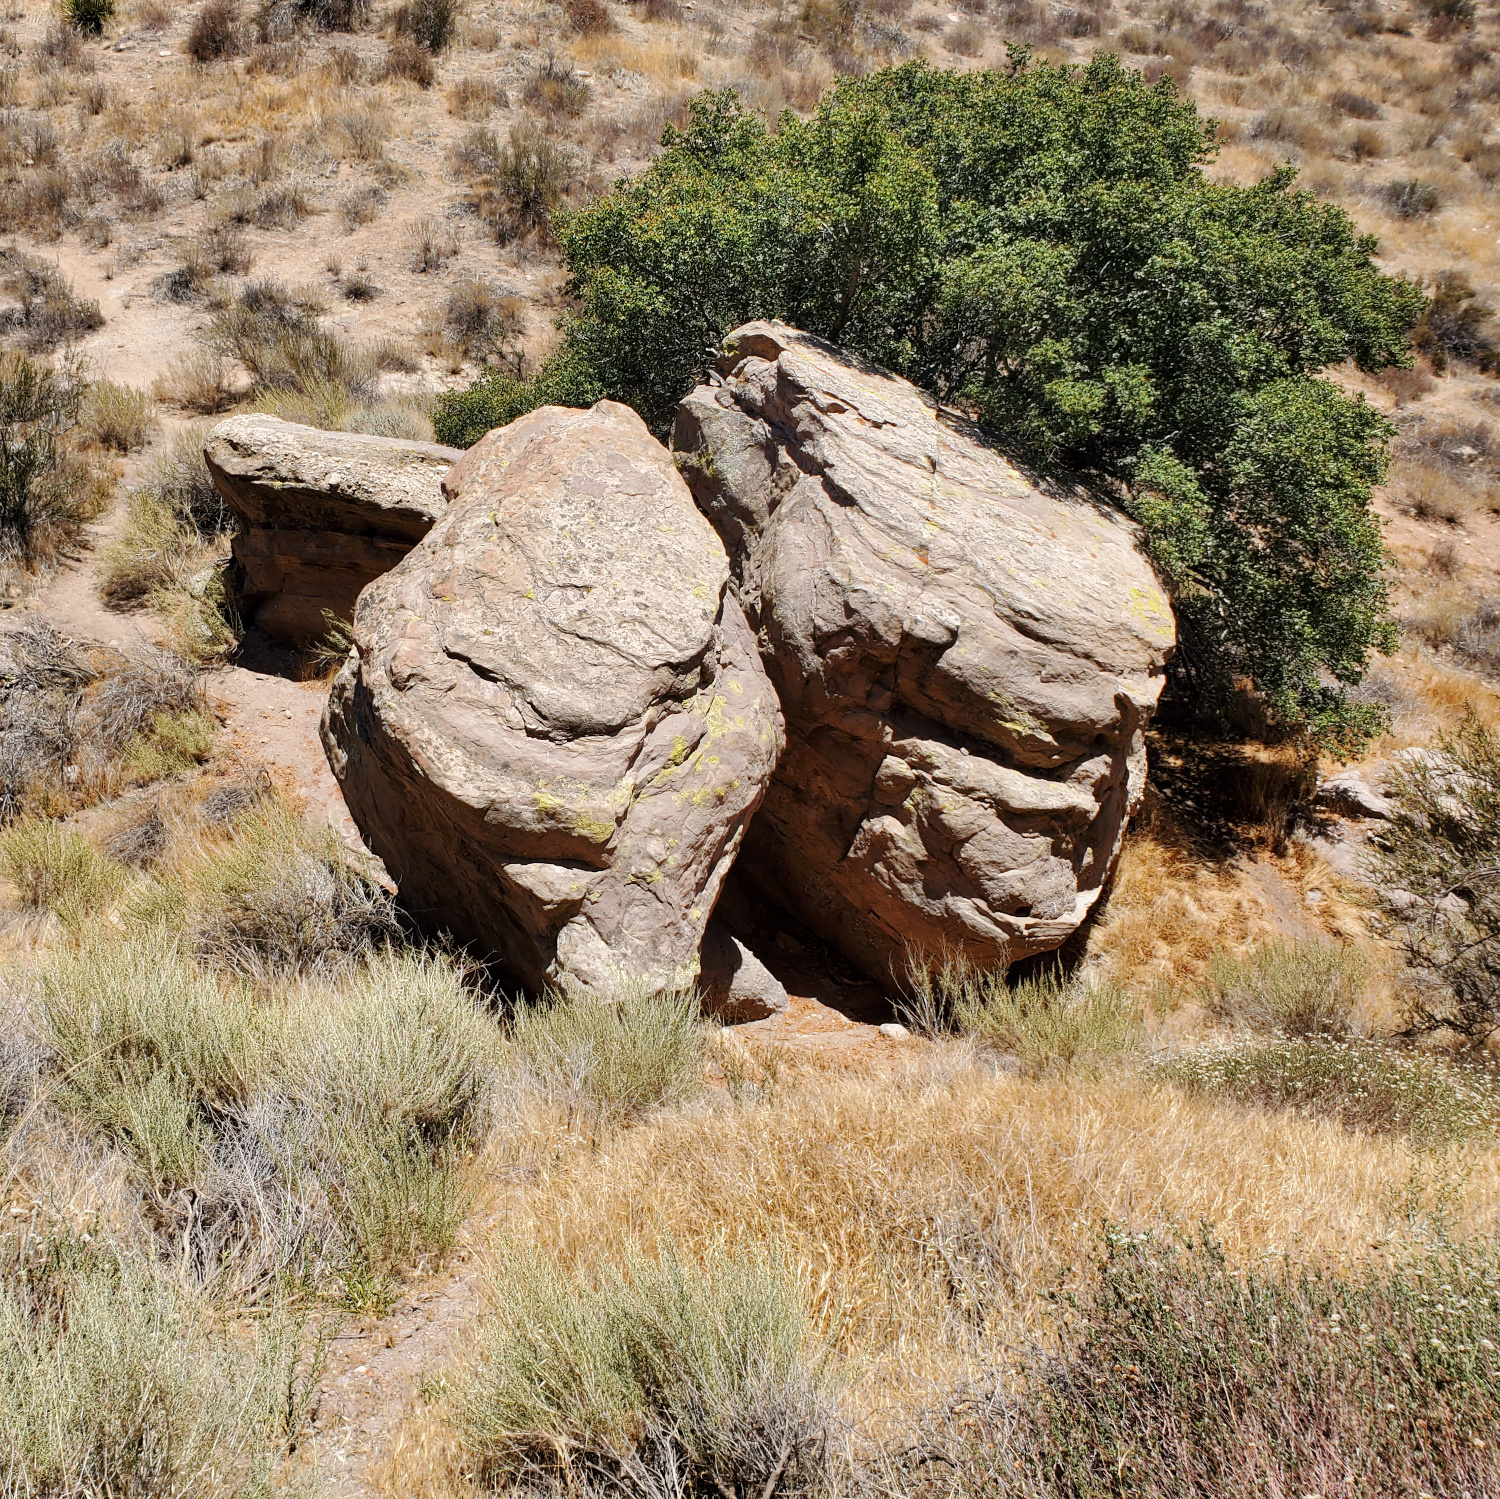 One of the rare patches of shade under a pile of large rocks